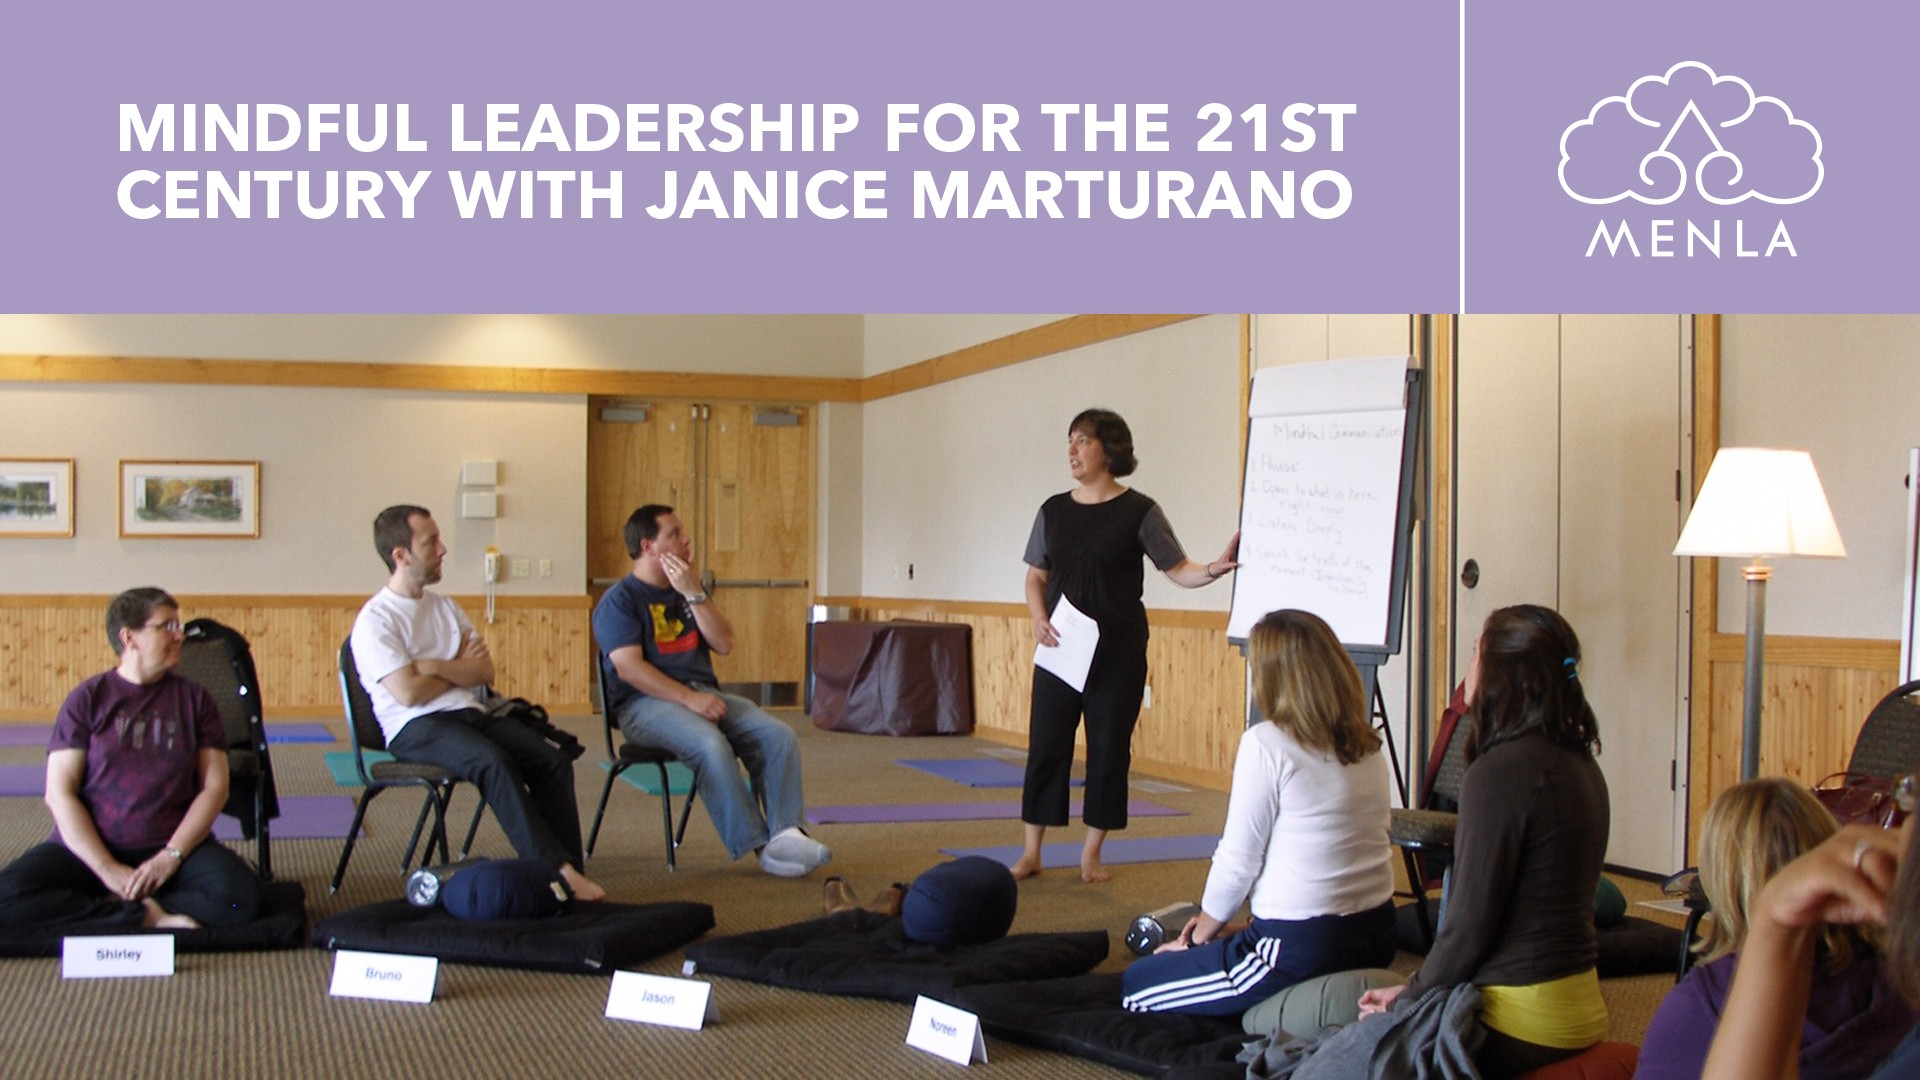 Mindful Leadership for the 21st Century with Janice Marturano April 22 - 26, 2020 at Menla Retreat and Dewa Spa in Phoenicia, New York